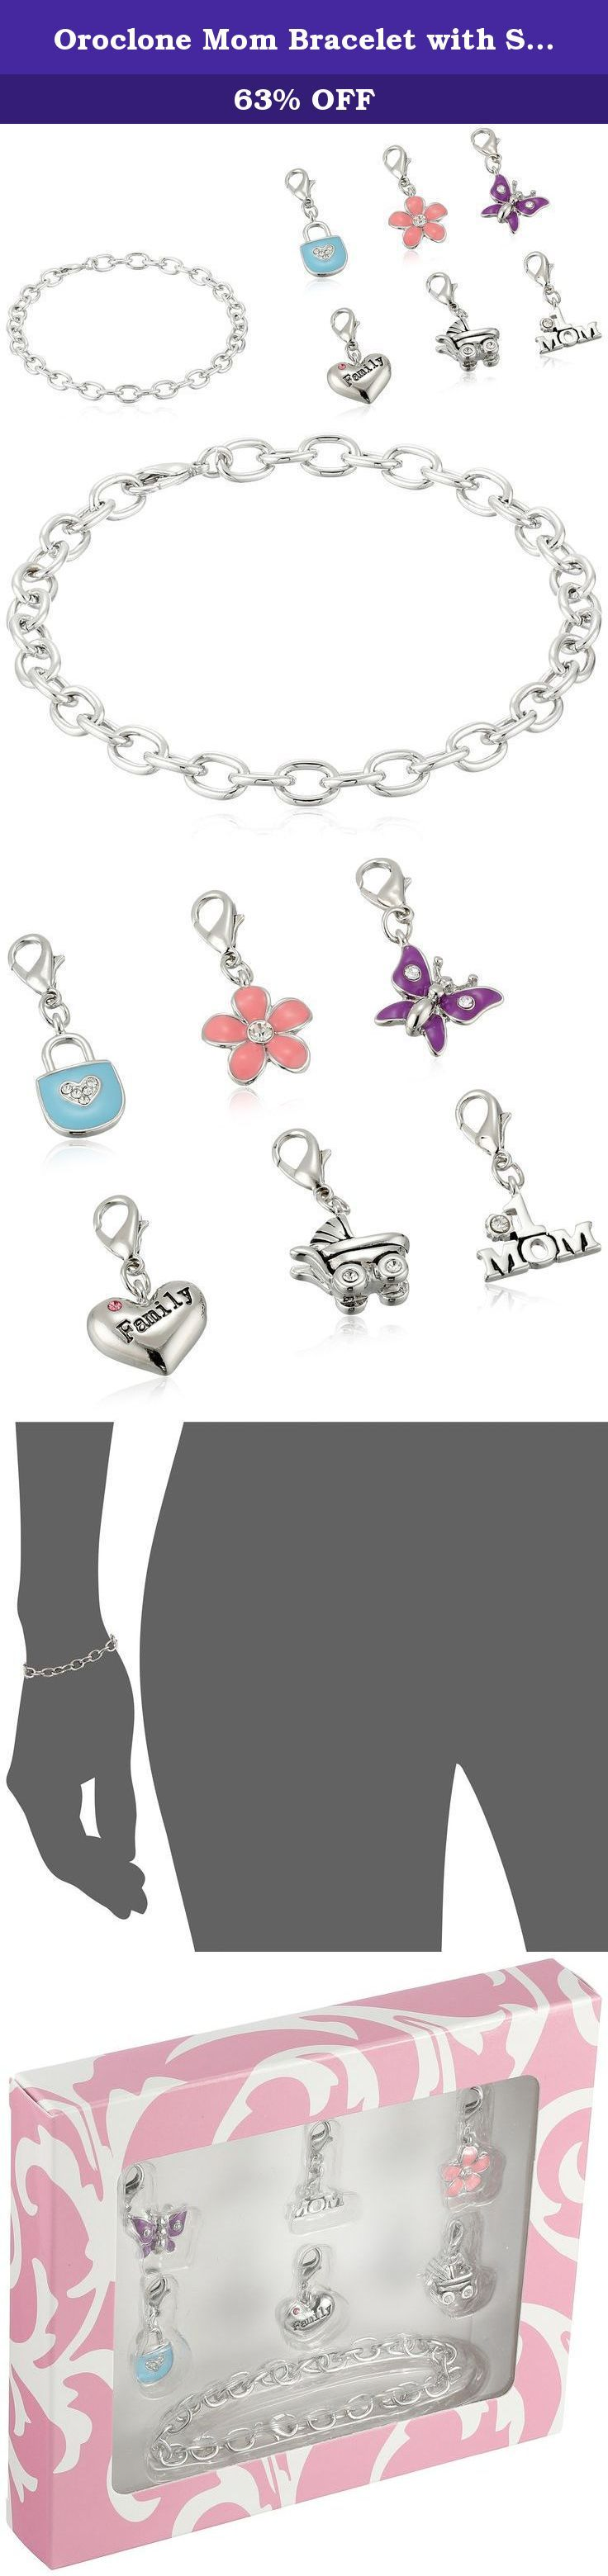 Oroclone Mom Bracelet with Six Clasp-Style Charms. Silve-tone charm bracelet featuring six family-oriented charms with lobster-claw clasps. Made in South Korea.